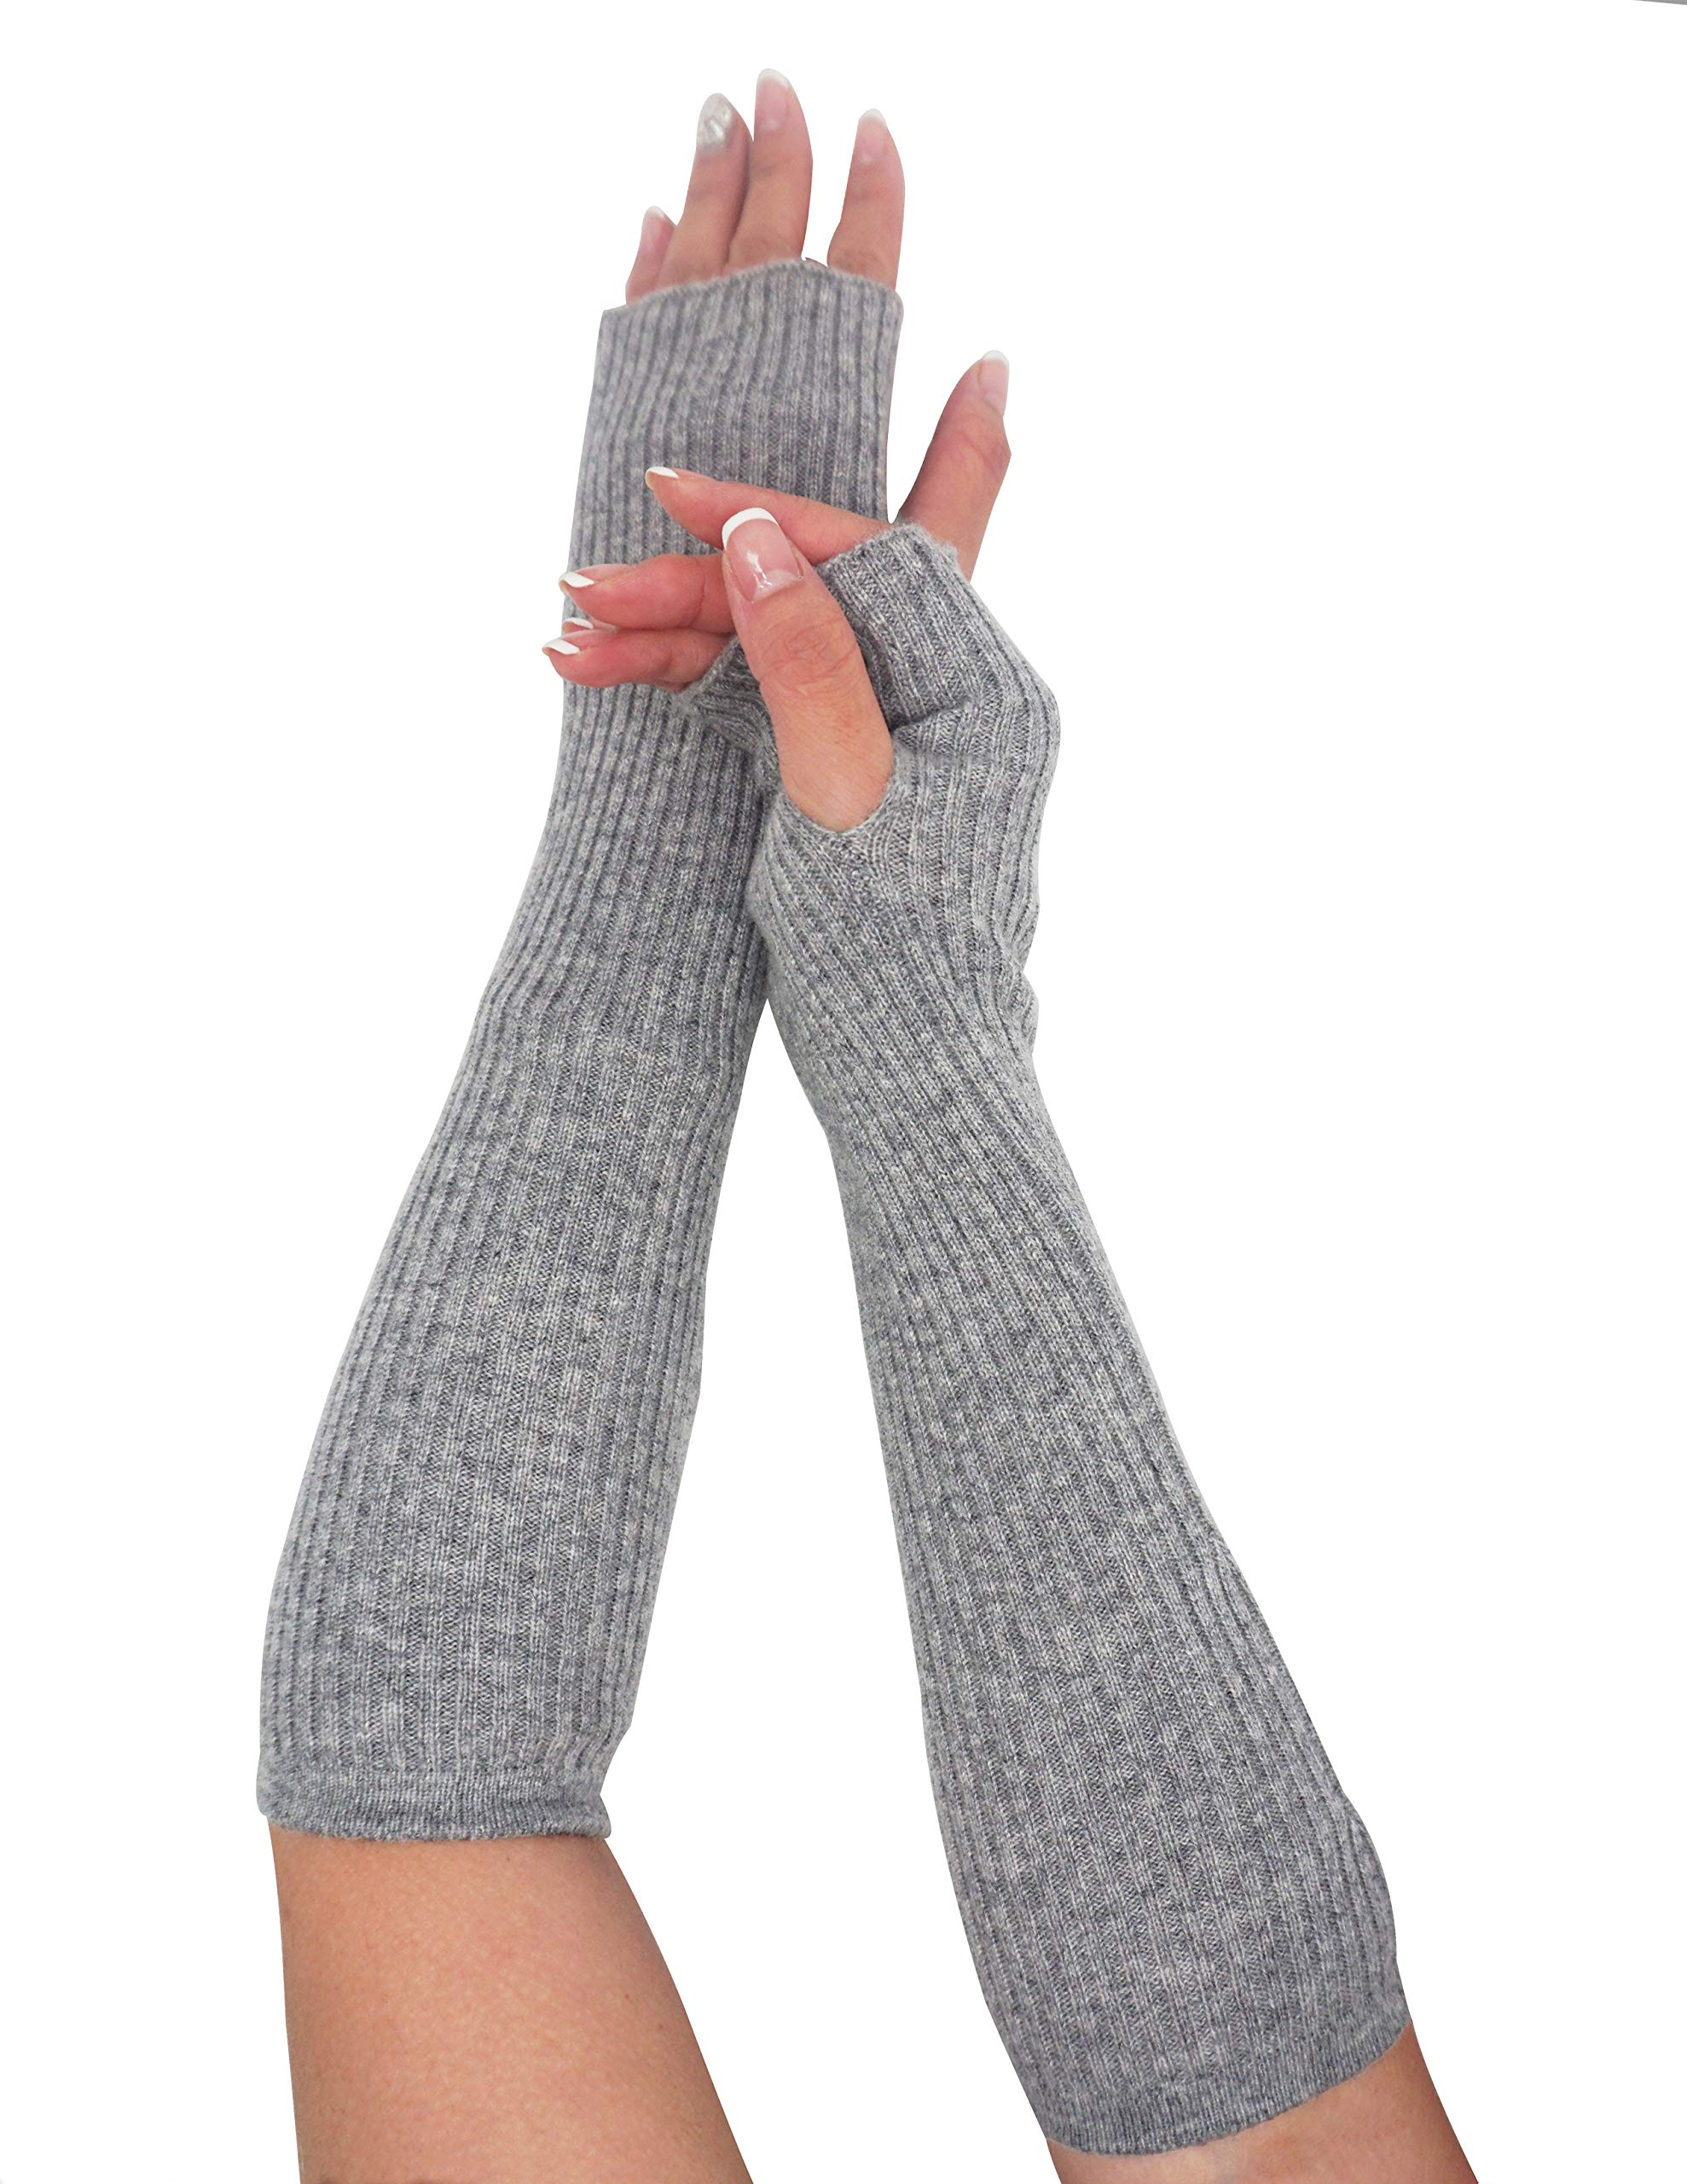 State Cashmere Women's 100% Cashmere Knit Long Fingerless Arm Warmers Mitten Gloves 13'' by State Cashmere